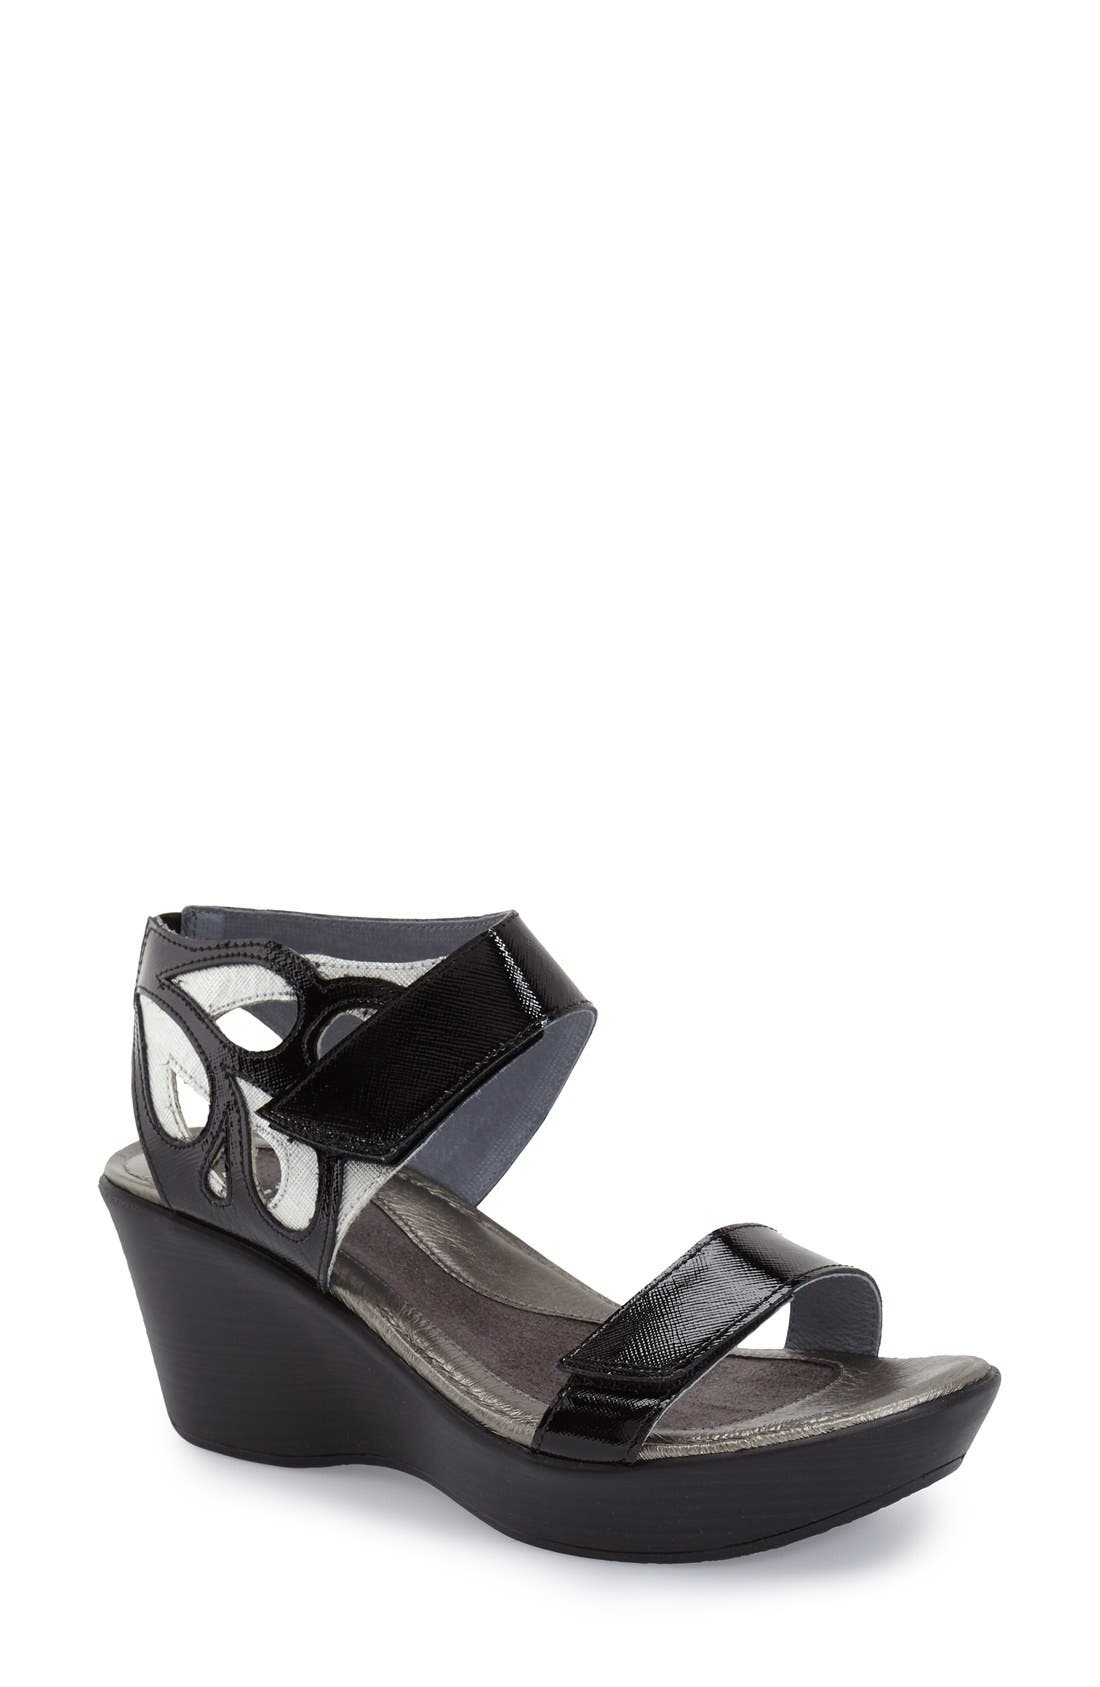 'Intrigue' Platform Wedge,                             Main thumbnail 1, color,                             Black Luster Leather